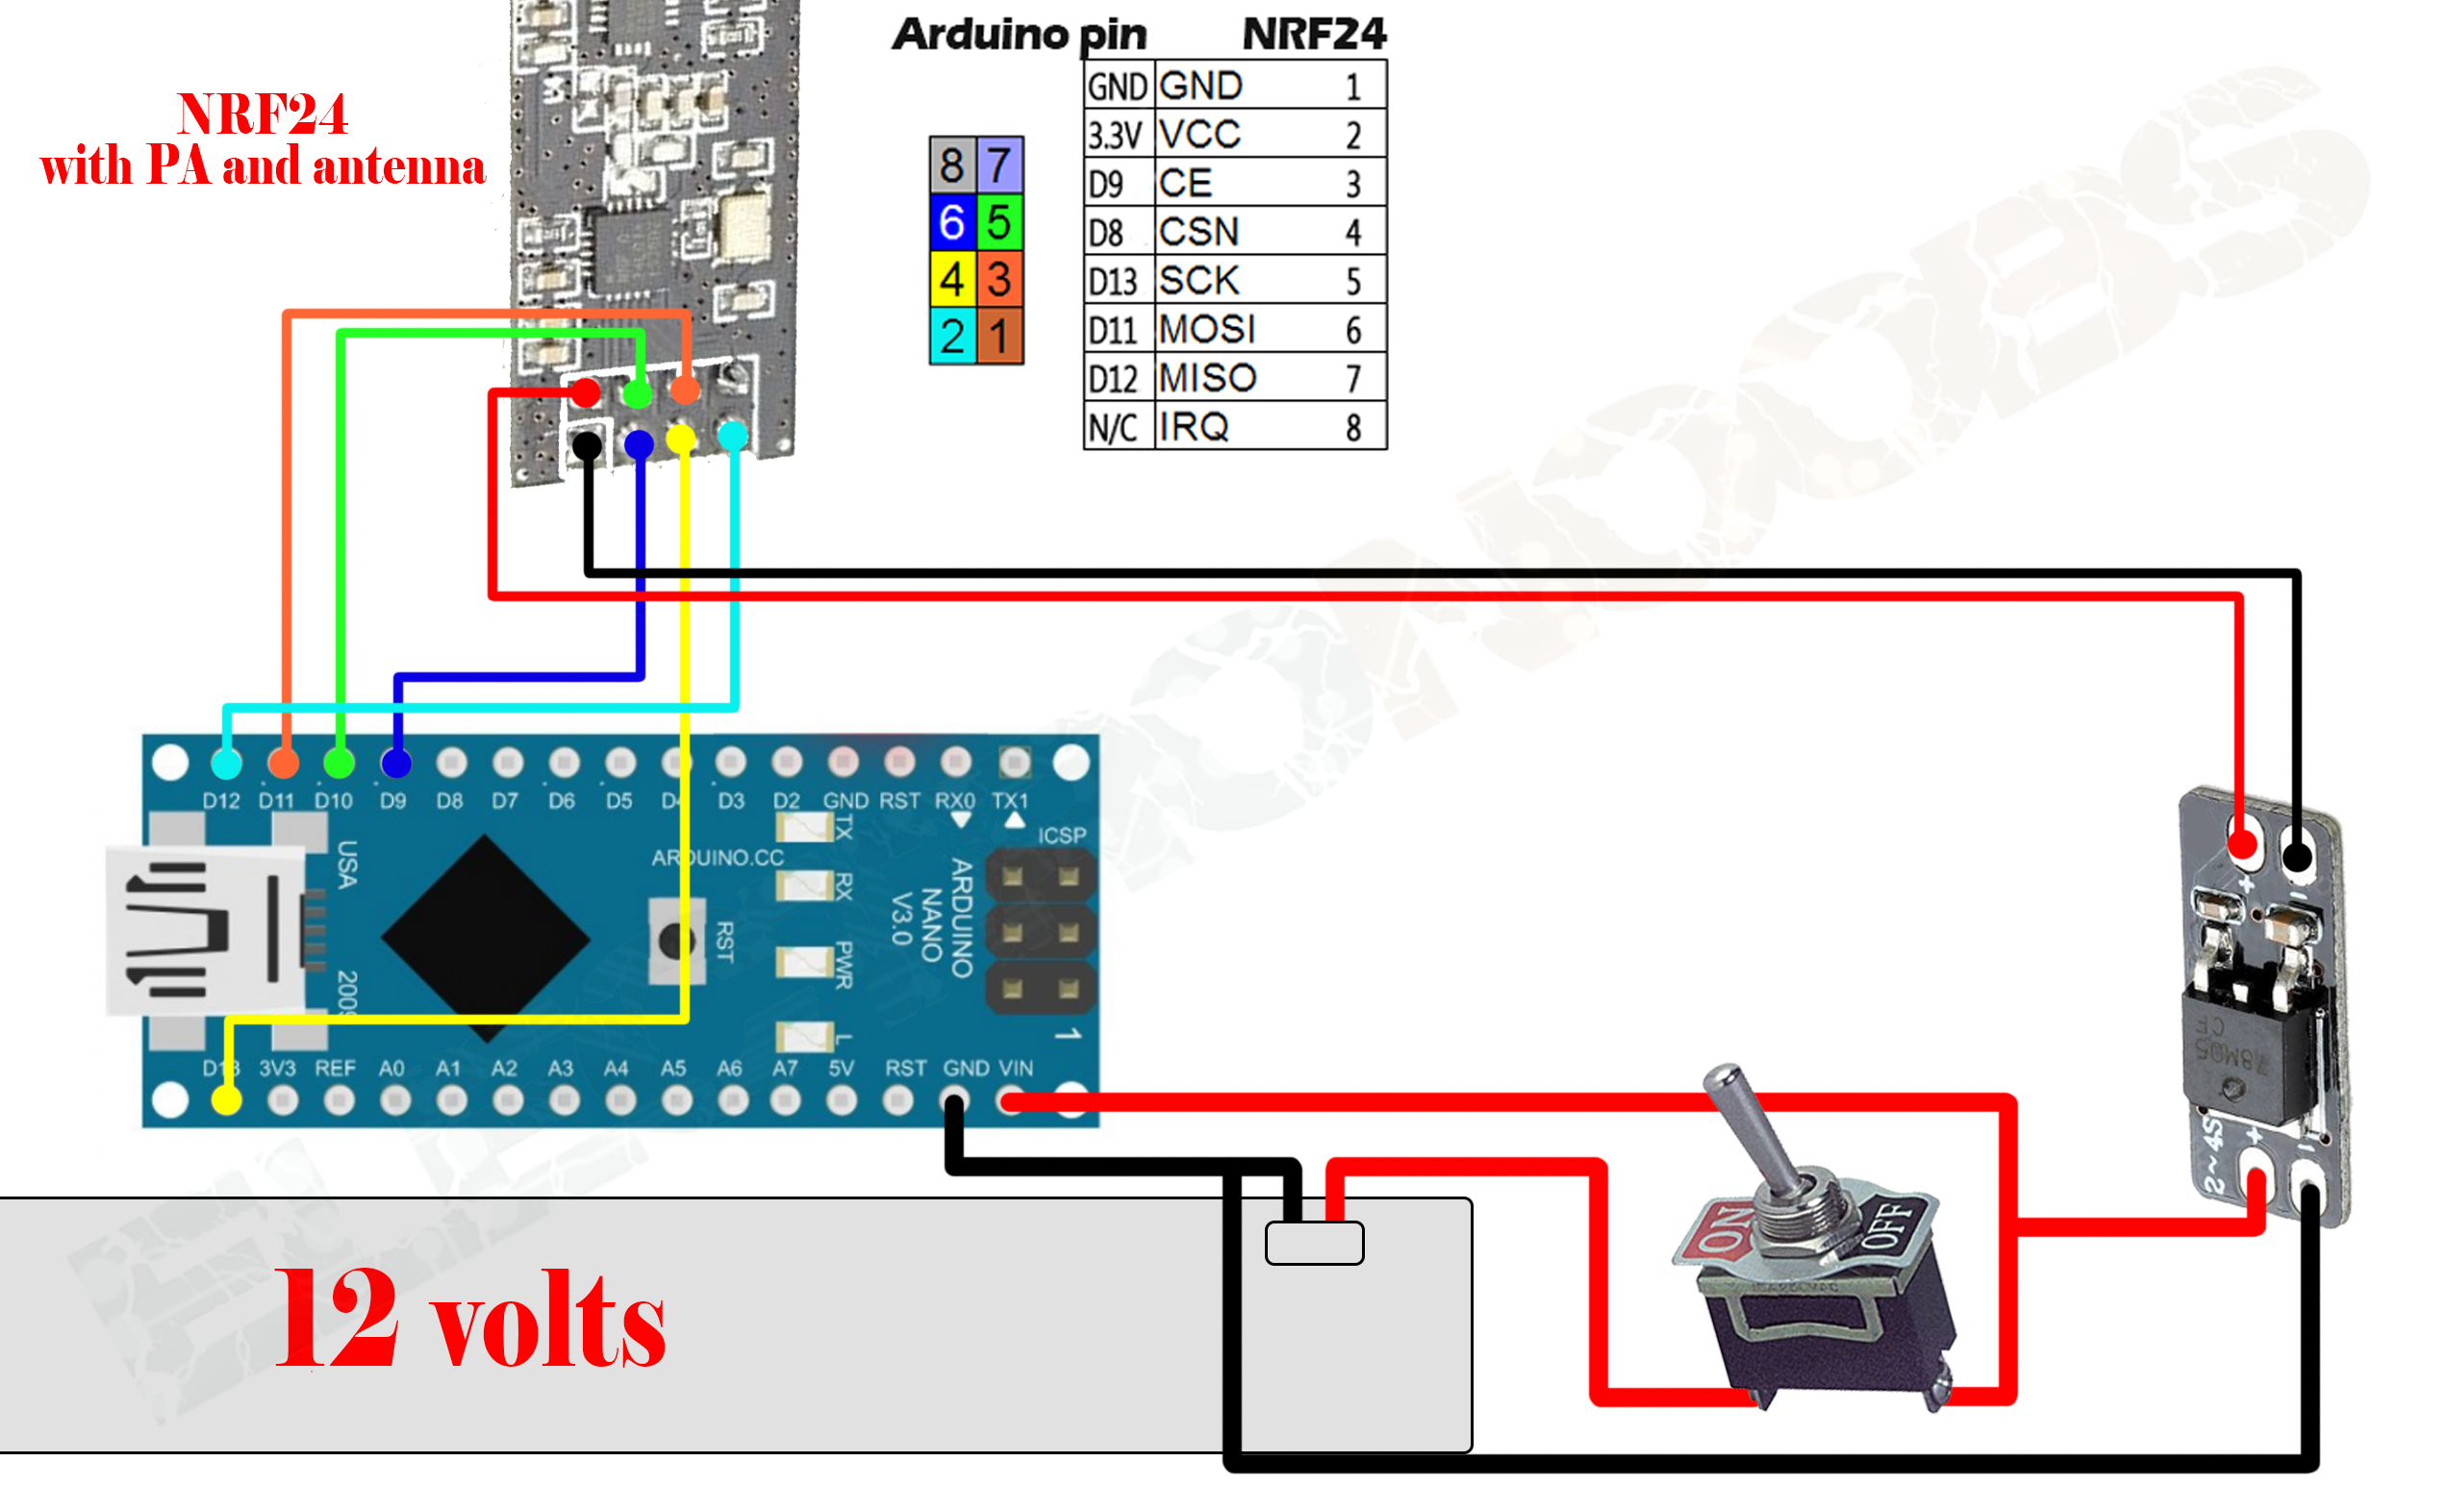 Onboard computer on arduino